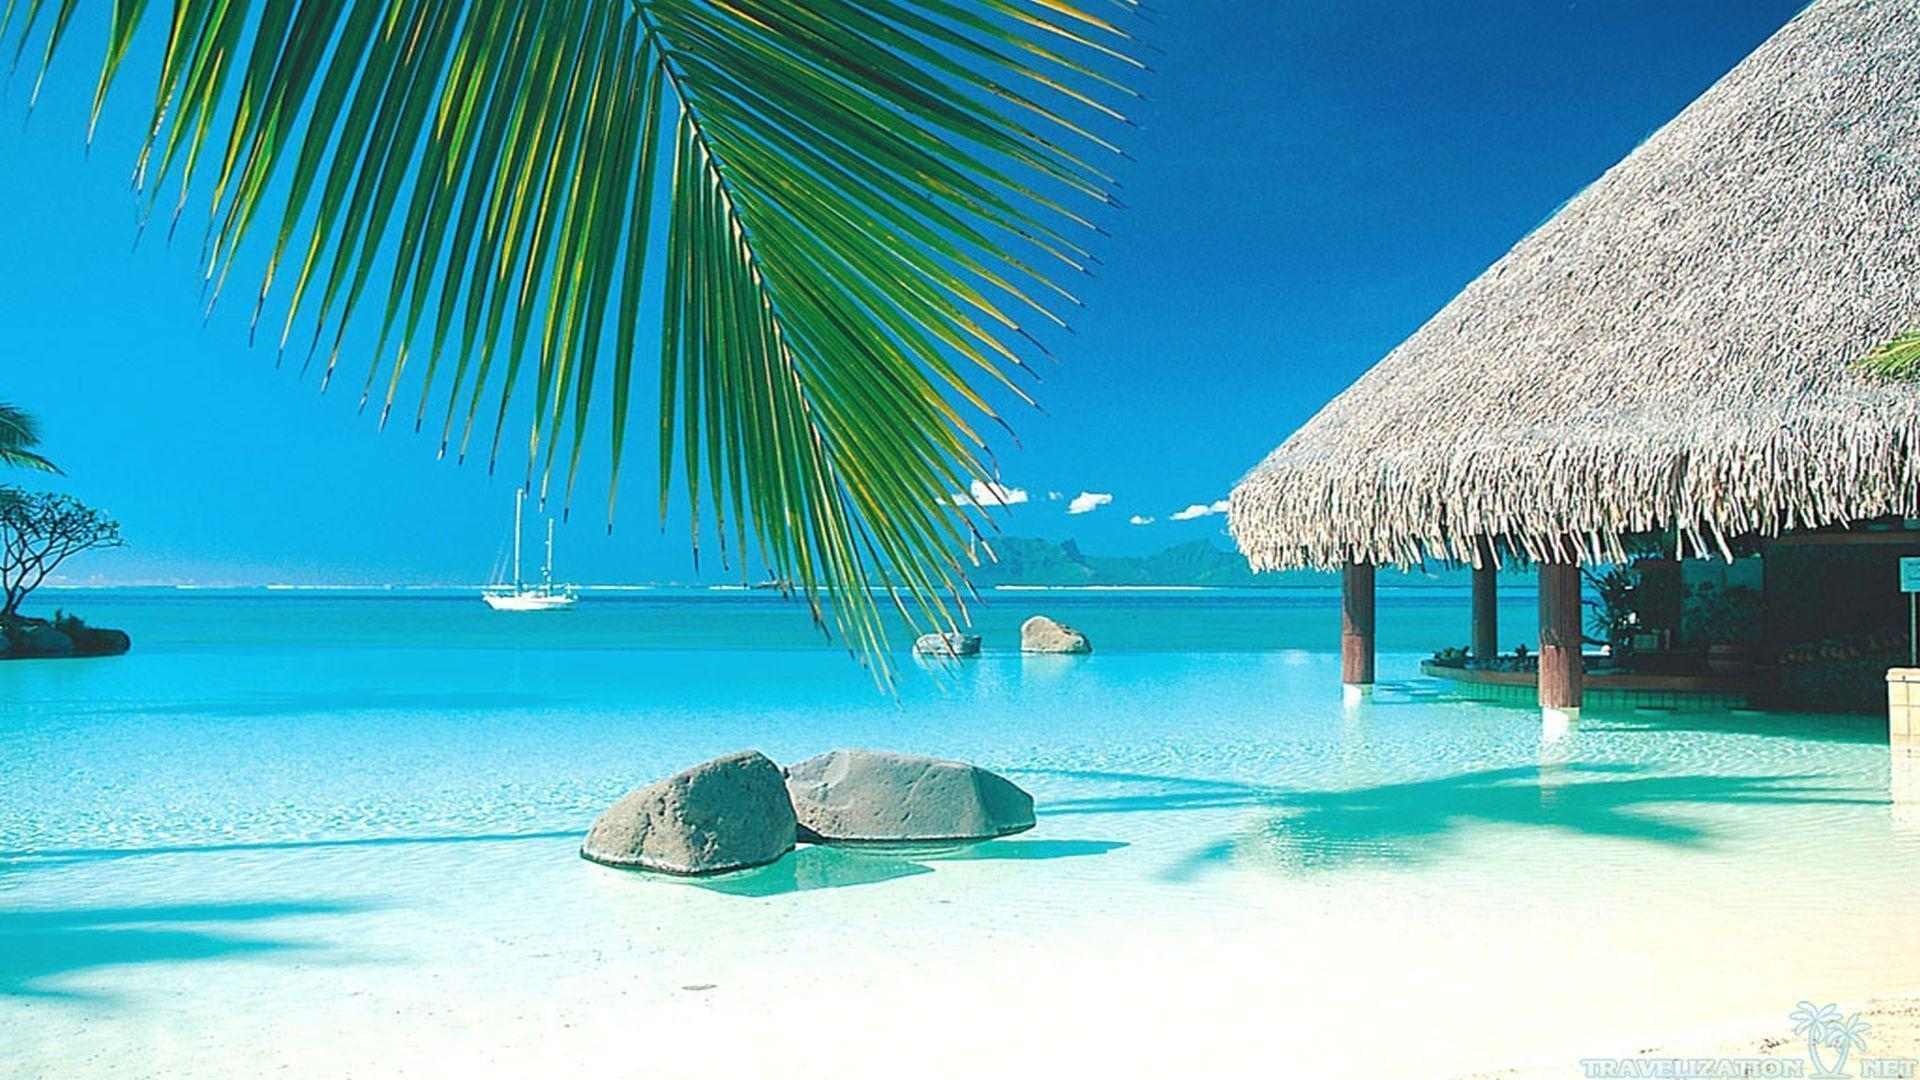 tropical paradise wallpaper - photo #19